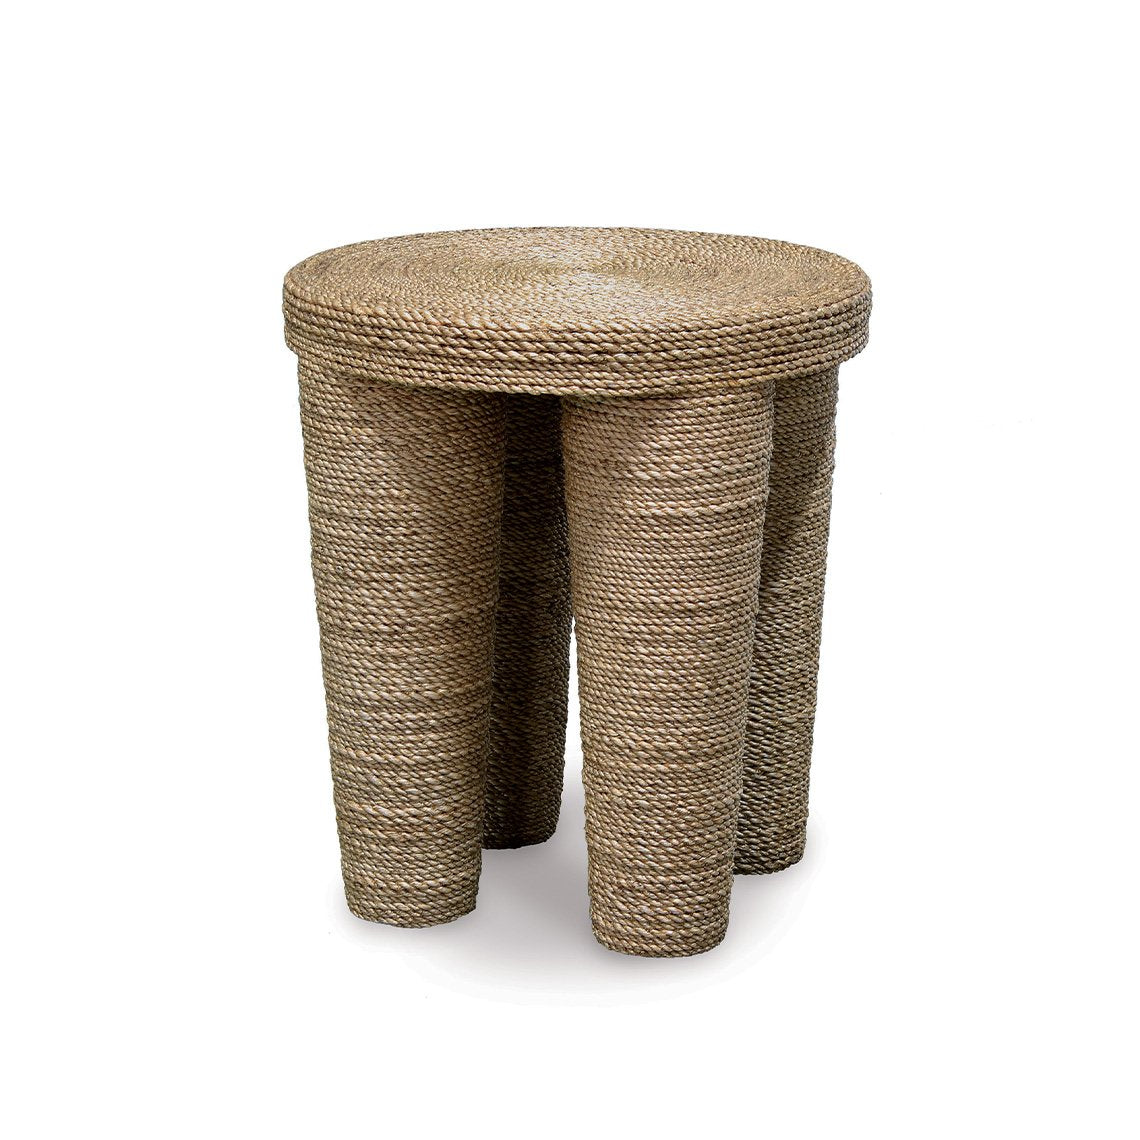 Wrapped Rope Footed Stool/Table